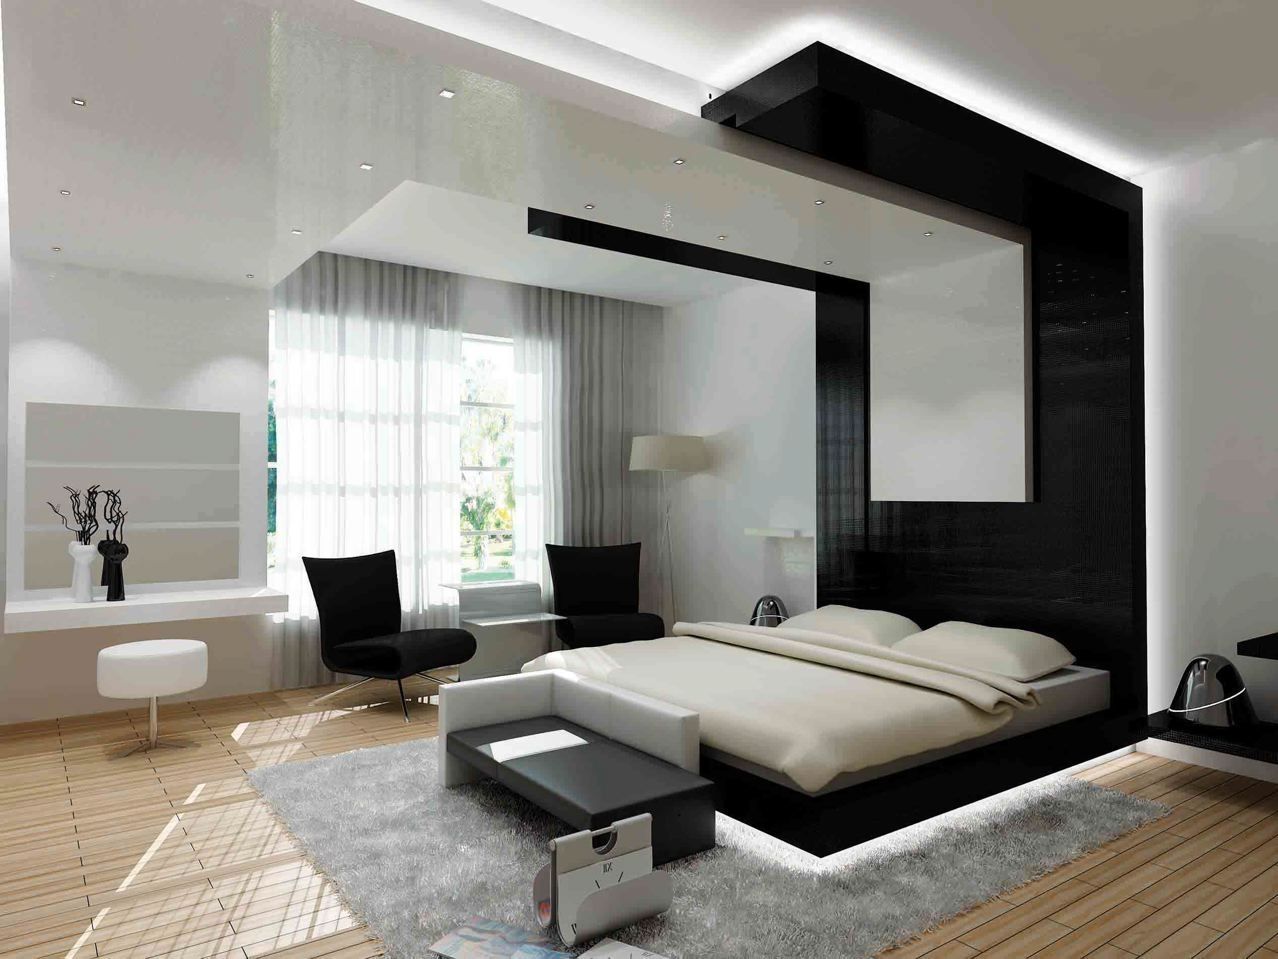 25 Beautiful Bedroom Ideas For Your Home – The Wow Style